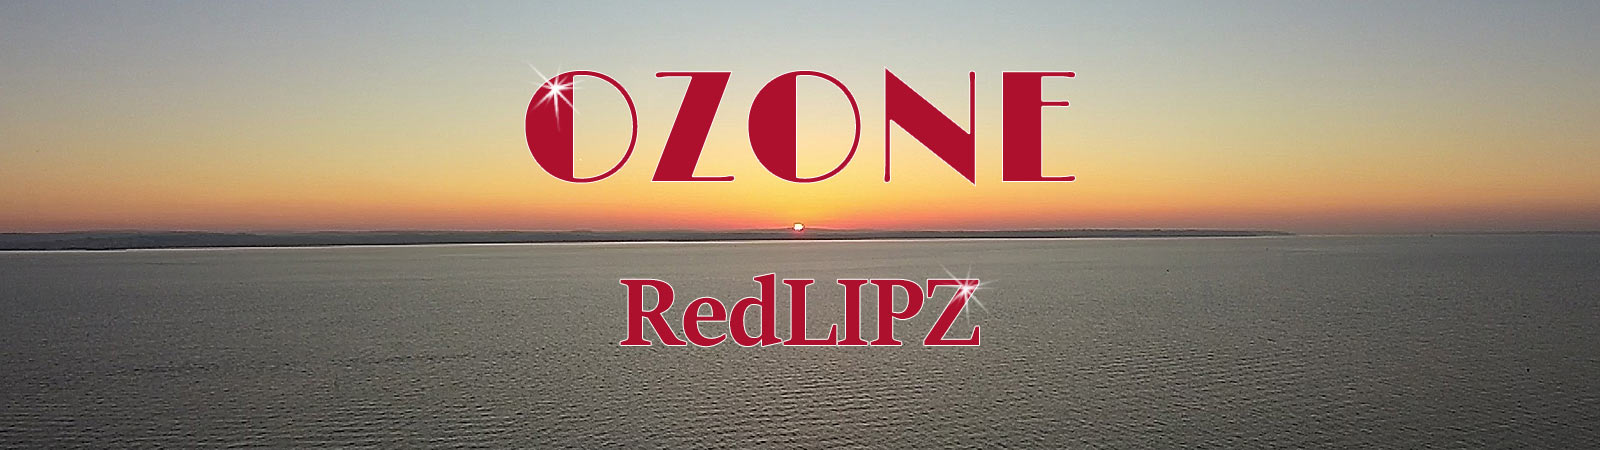 Ozone Song by Redlipz